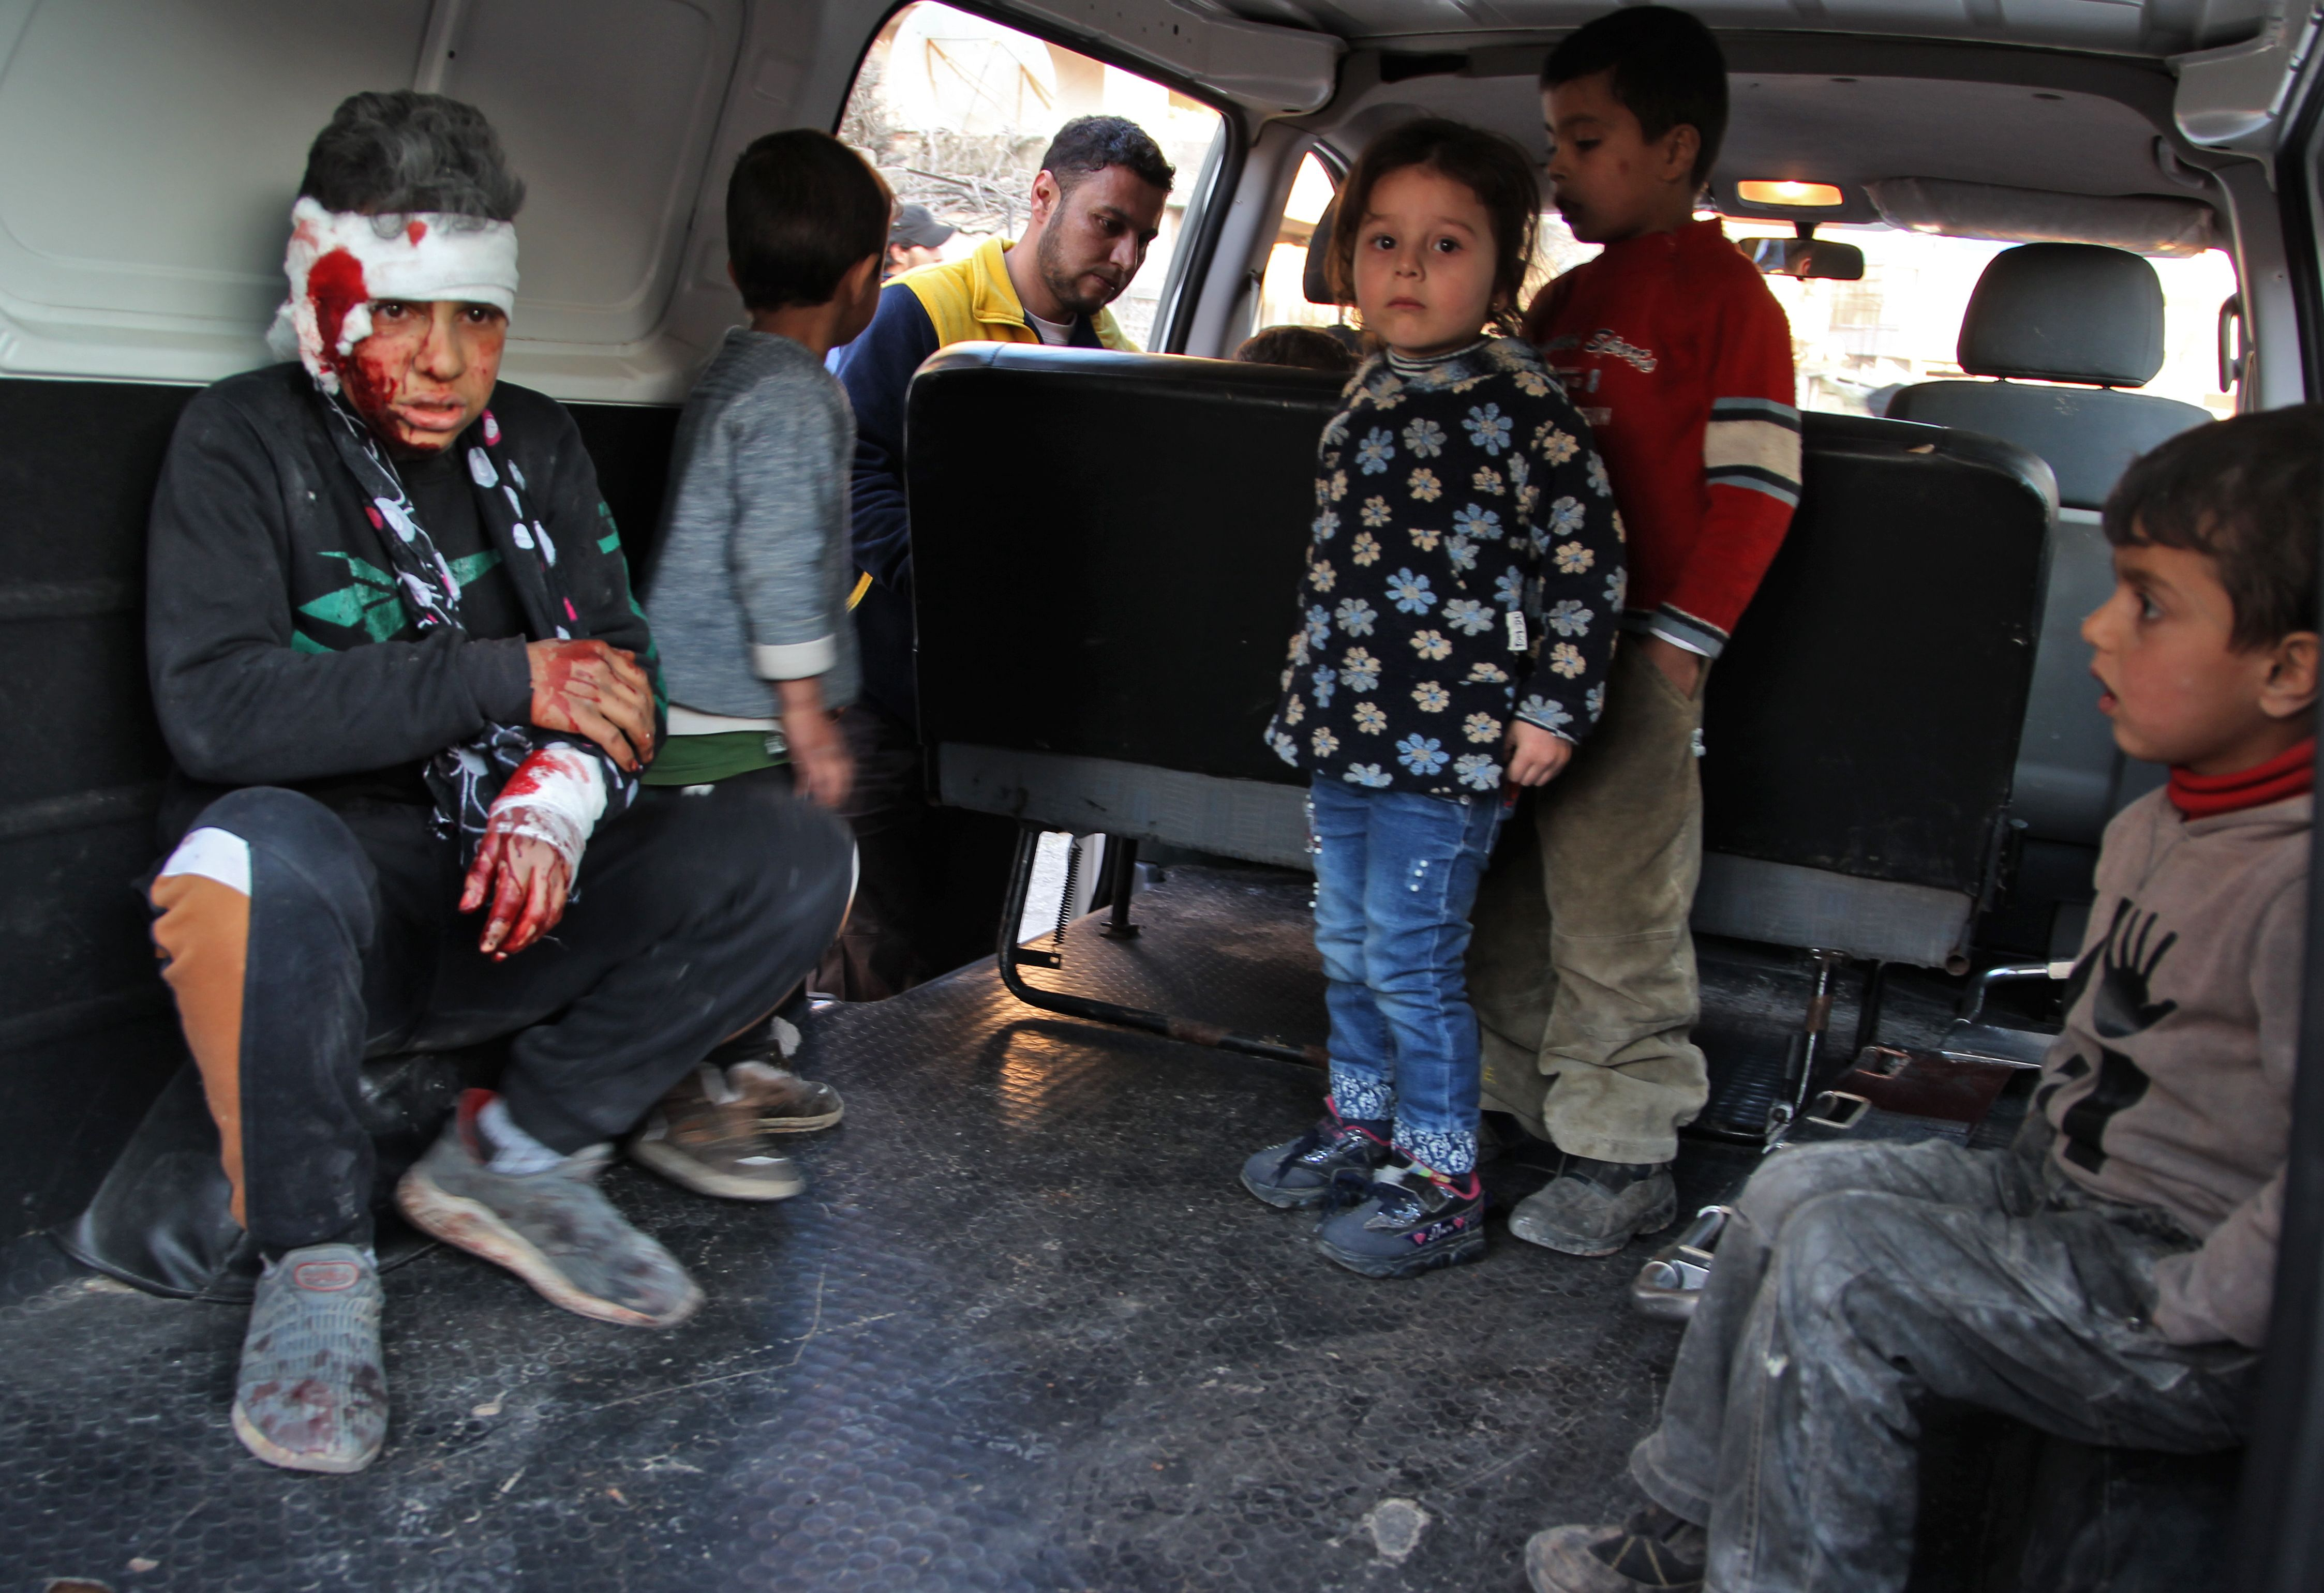 TOPSHOT - Graphic content / Syrian children sit inside a vehicle as they are evacuated from the scene of a pro-regime forces air strike in the town Maarrat Misrin in Syrias northwestern Idlib province, on February 25, 2020. (Photo by ABDULAZIZ KETAZ/AFP via Getty Images)